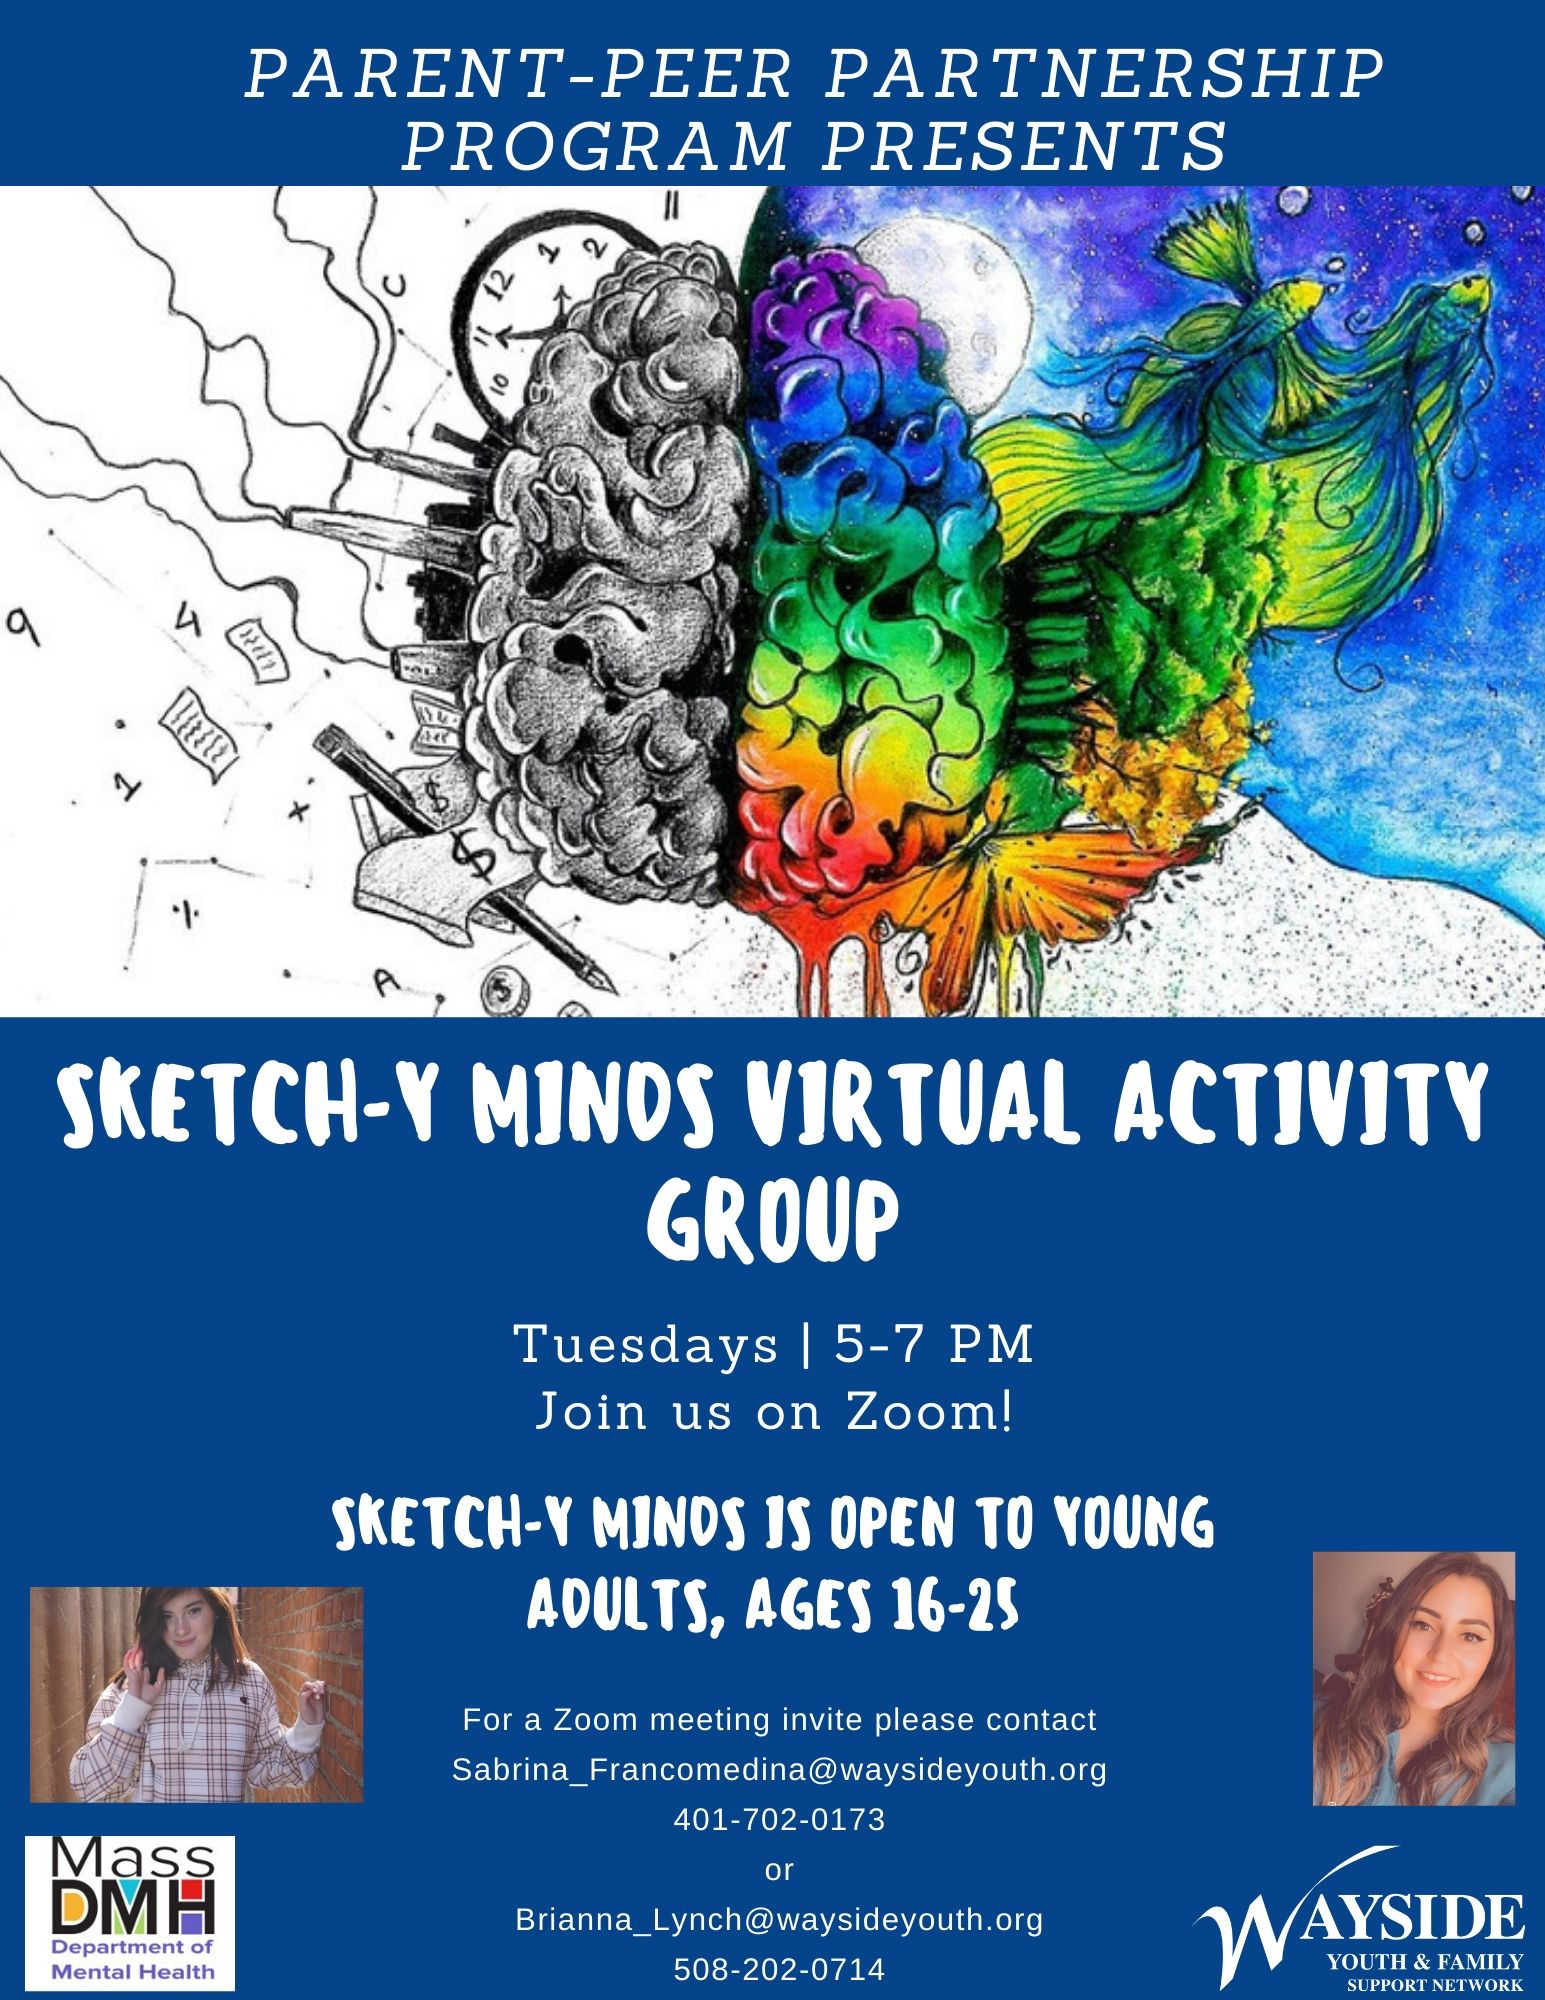 Sketch-y Minds: Wayside Youth & Family Support Network (Virtual Young Adult Support Group, Ages 16-25)